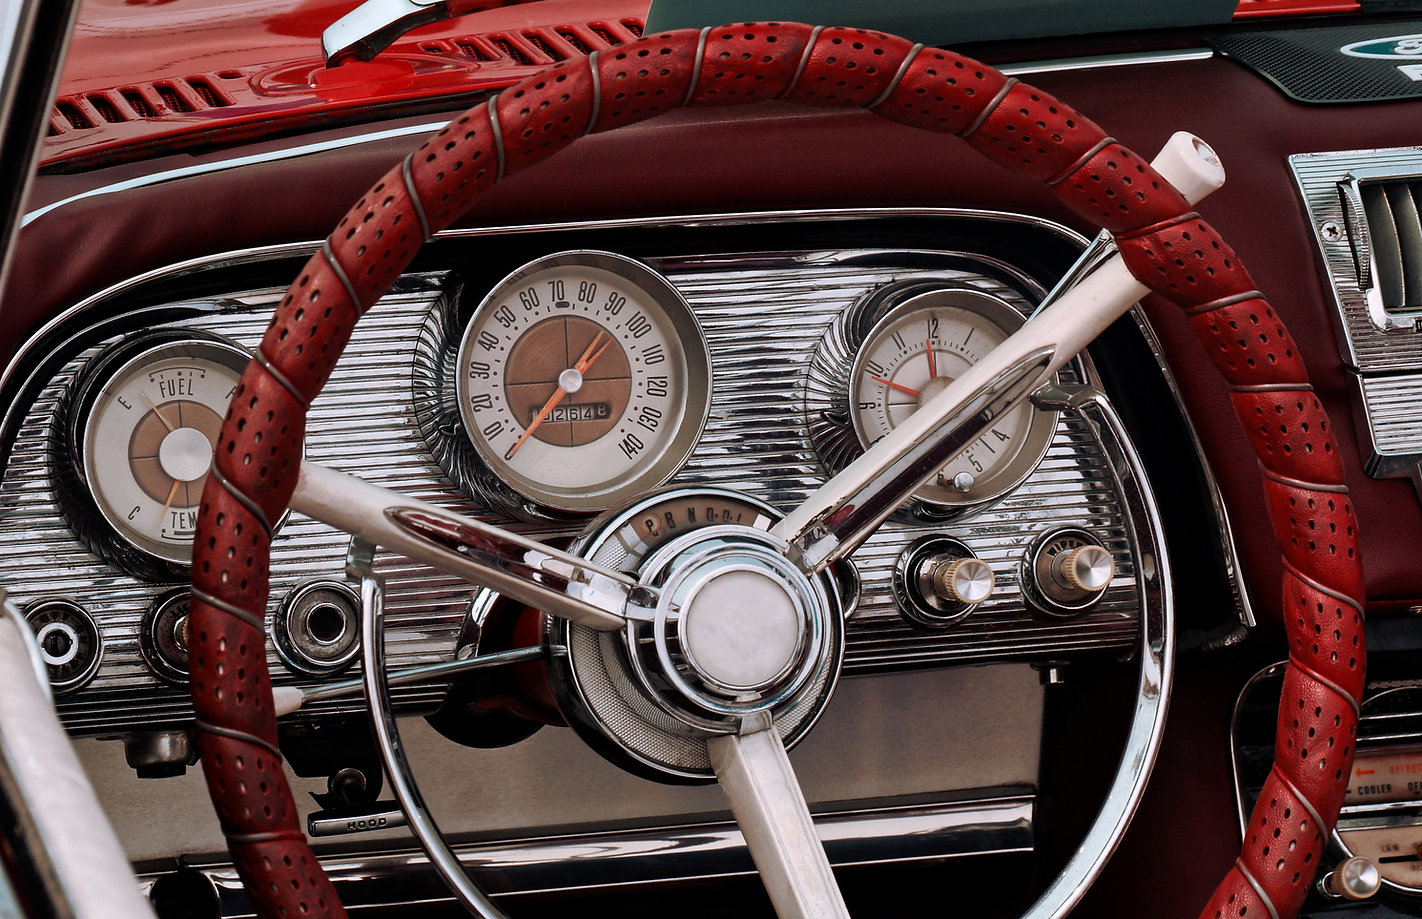 Part of the interior of an oldtimer spor